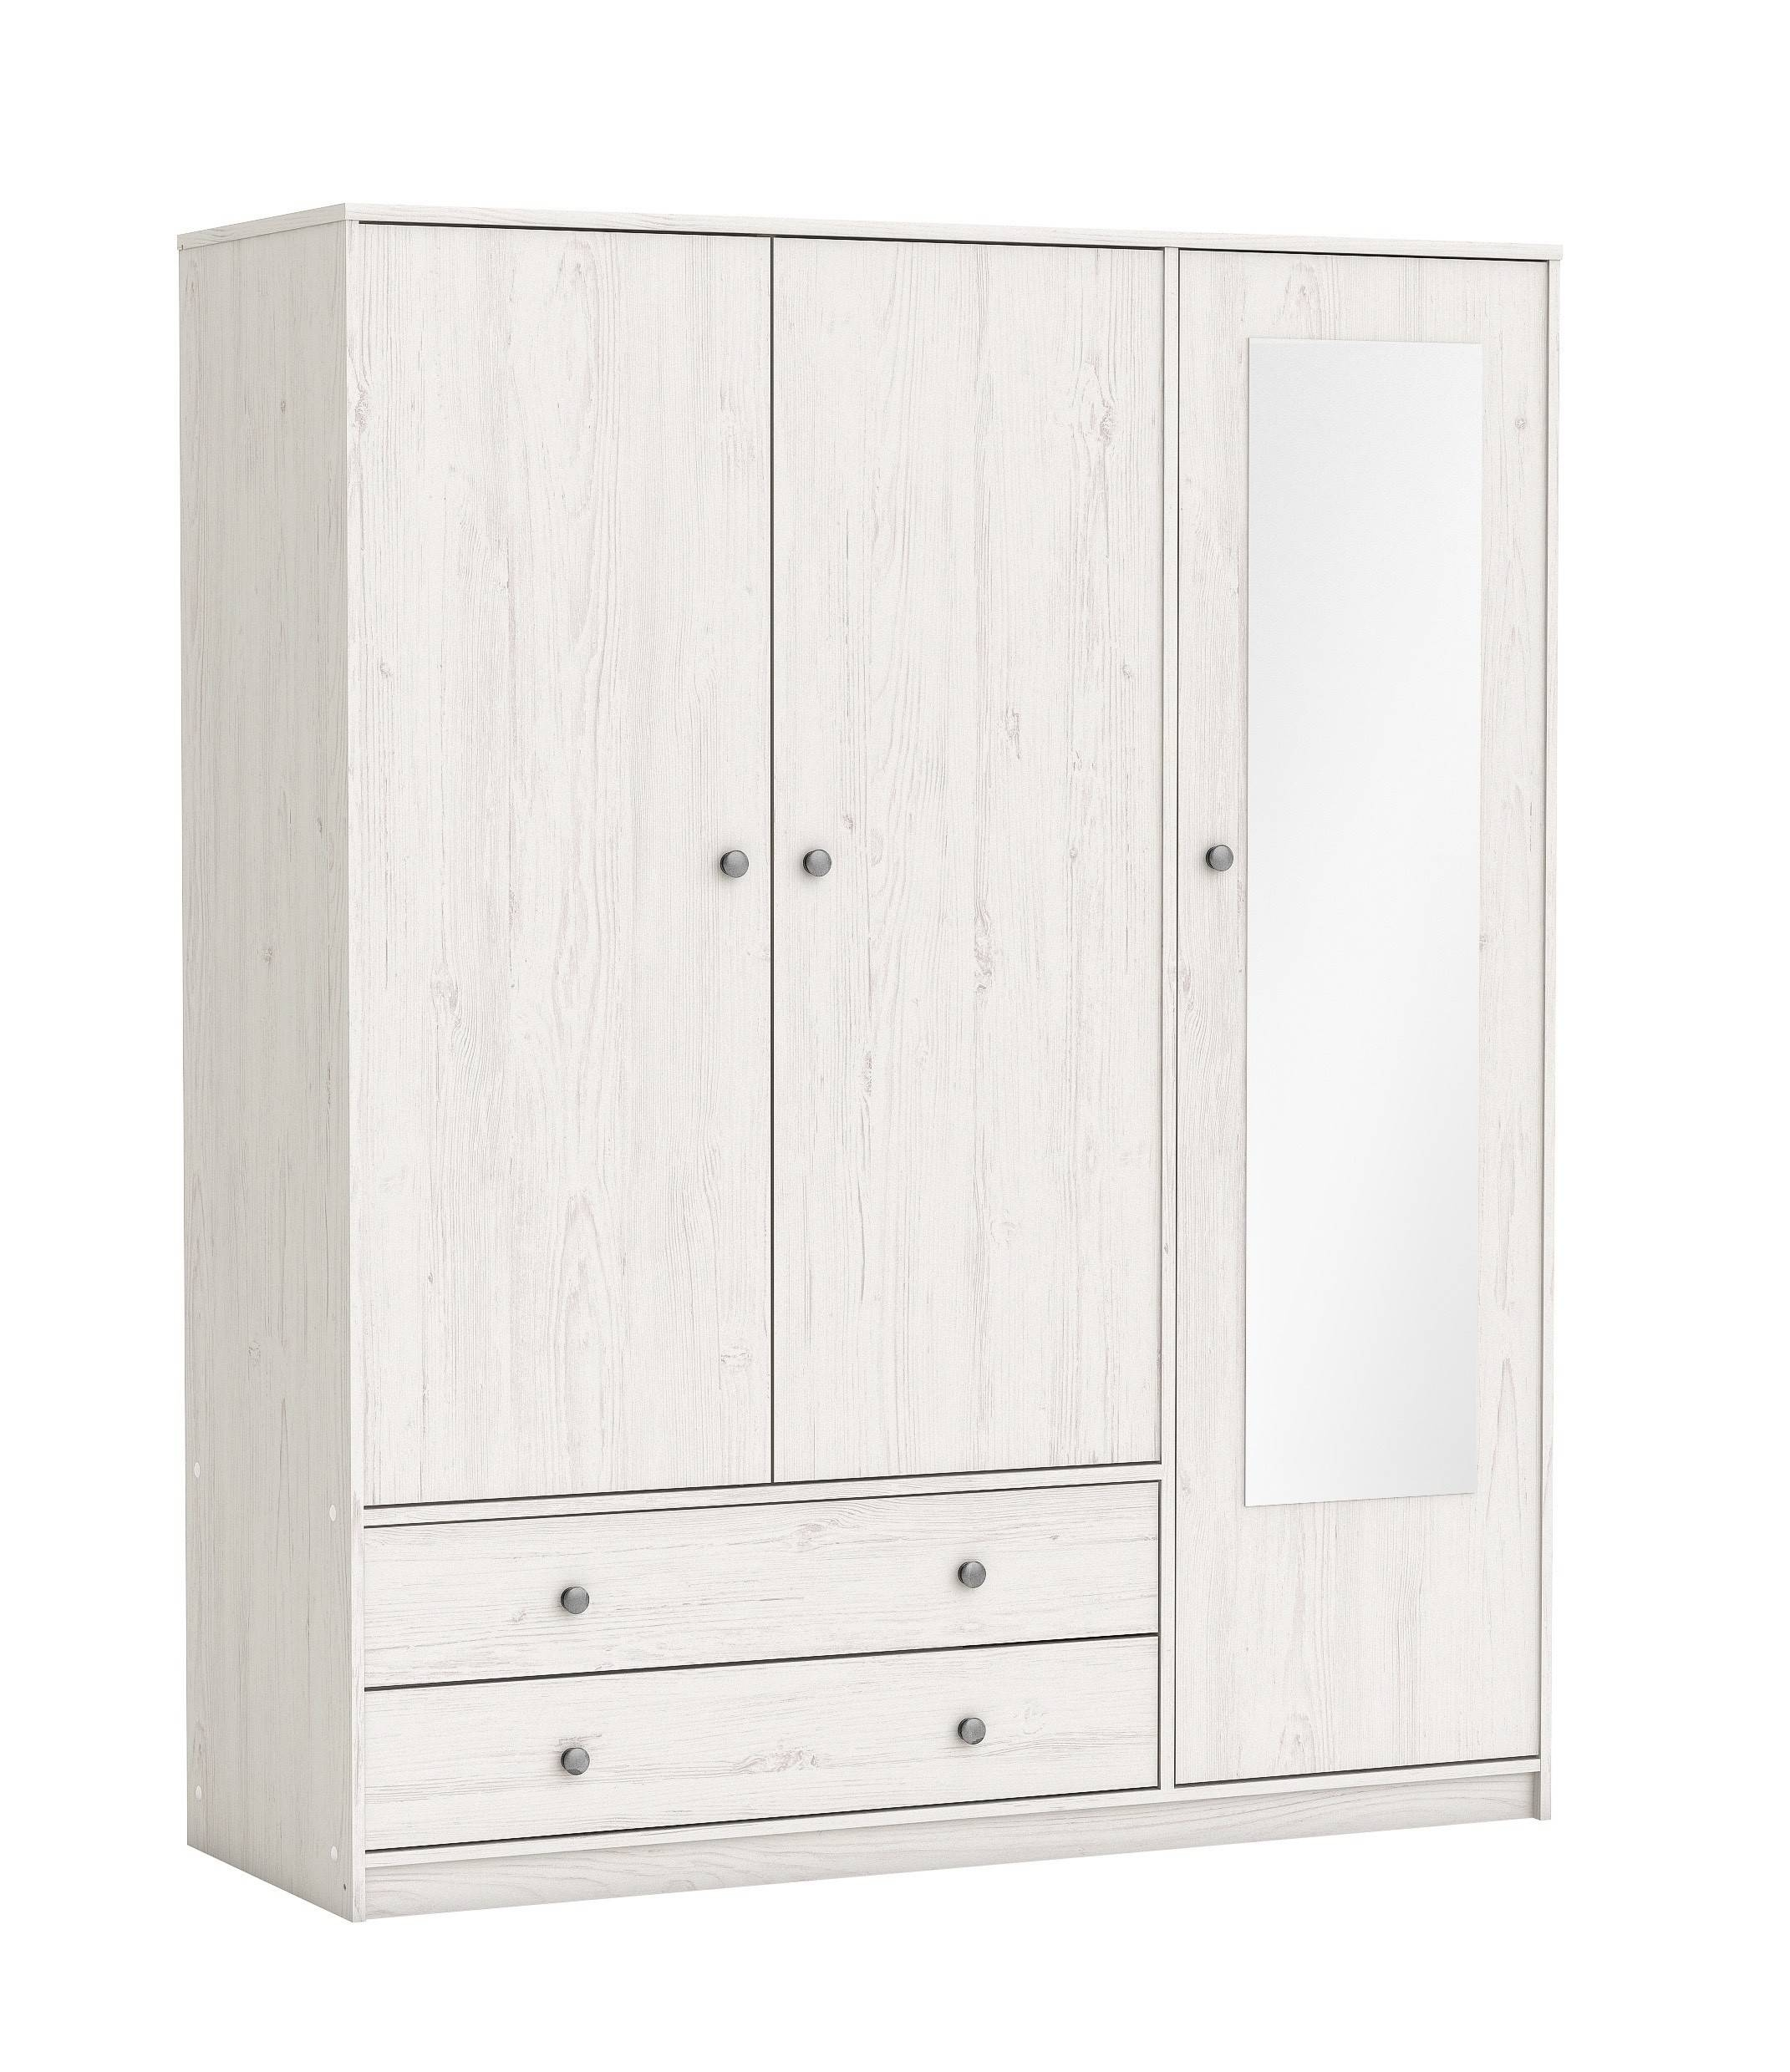 St Ives 3 Door Wardrobe - Brixton Beds pertaining to 3 Door White Wardrobes (Image 23 of 30)